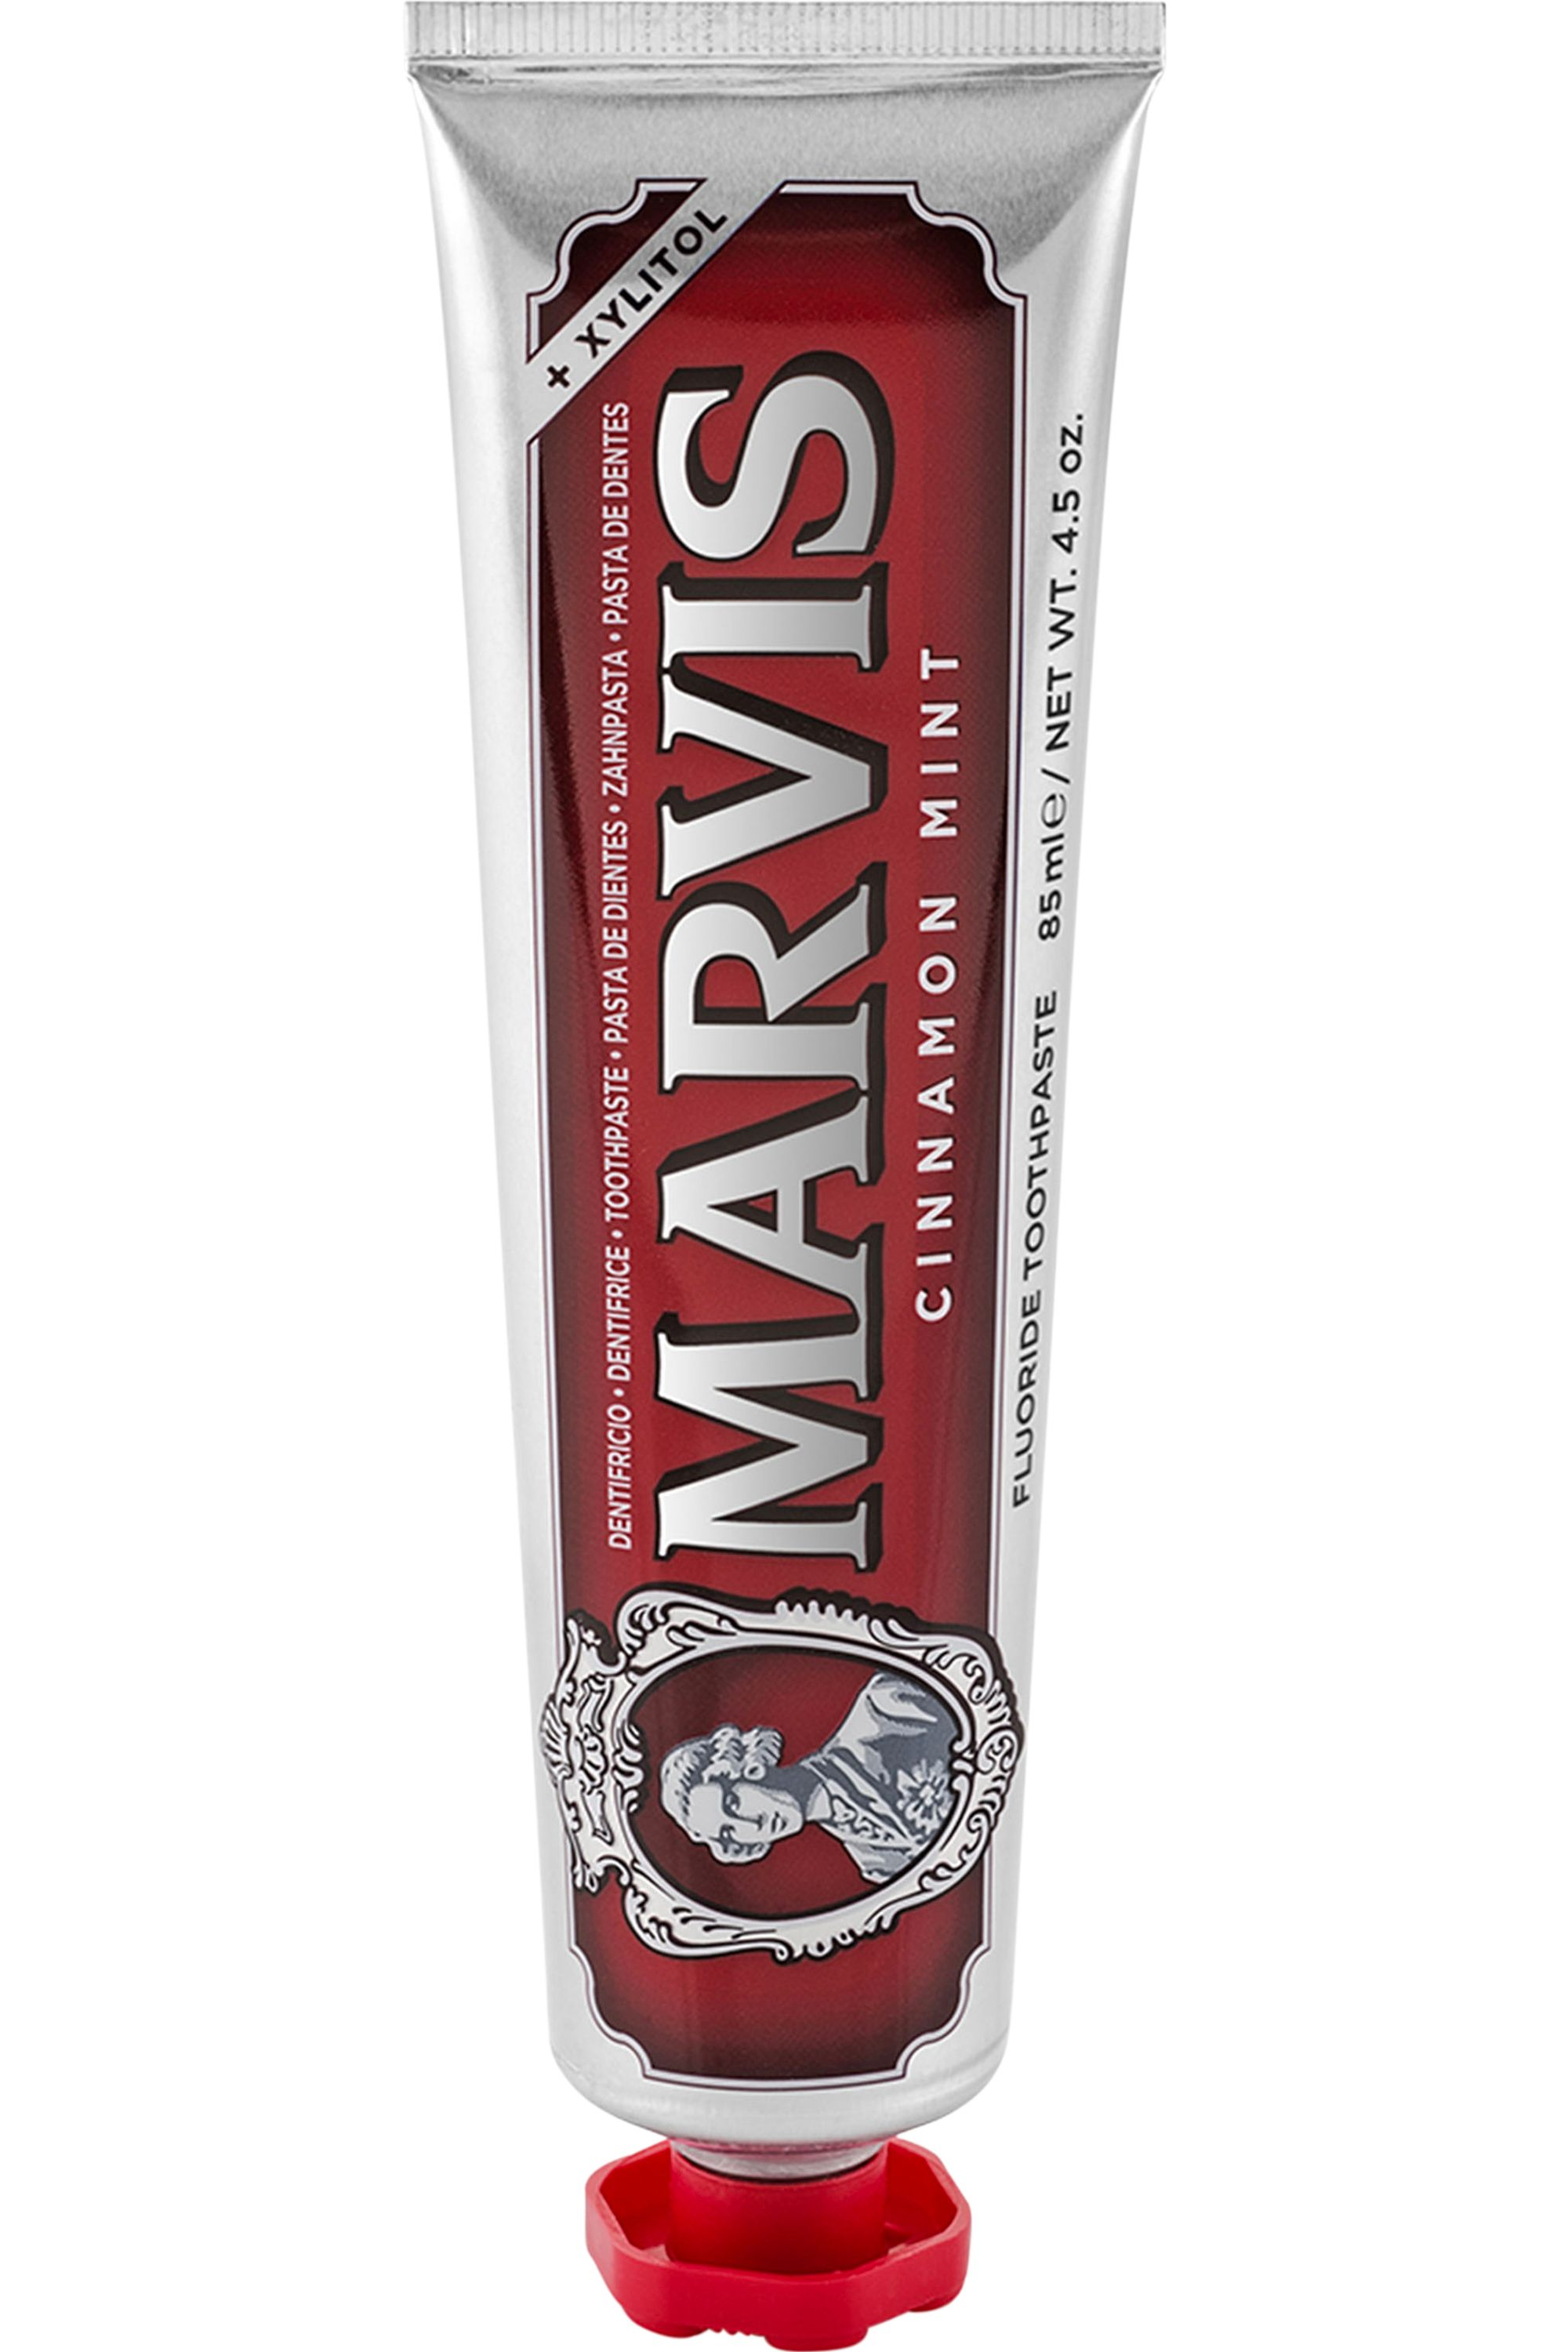 Blissim : Marvis - Dentifrice Menthe & Cannelle Rouge - 85 ml